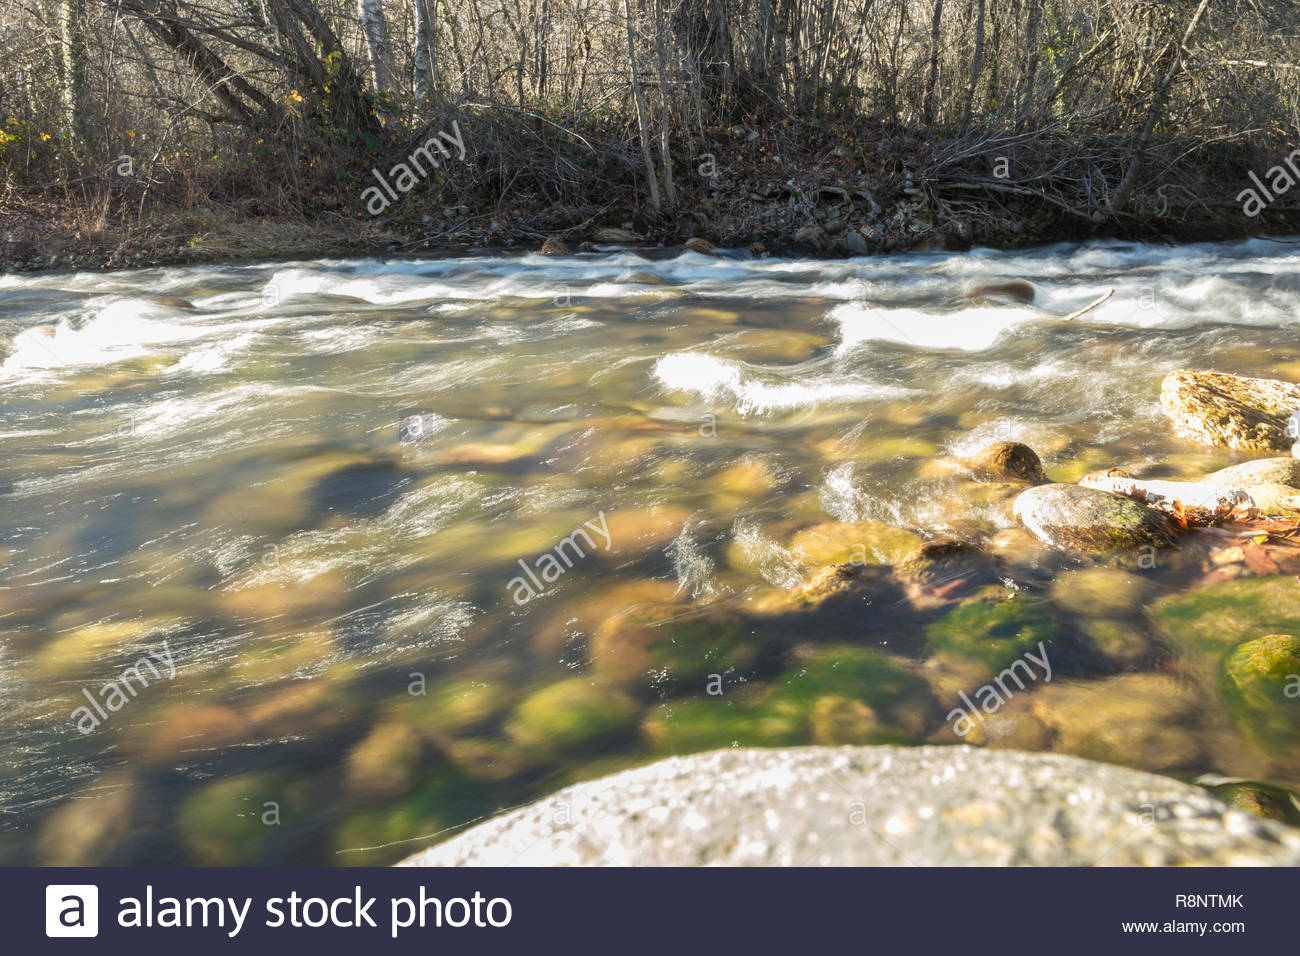 Long exposition photo of a river - Stock Image